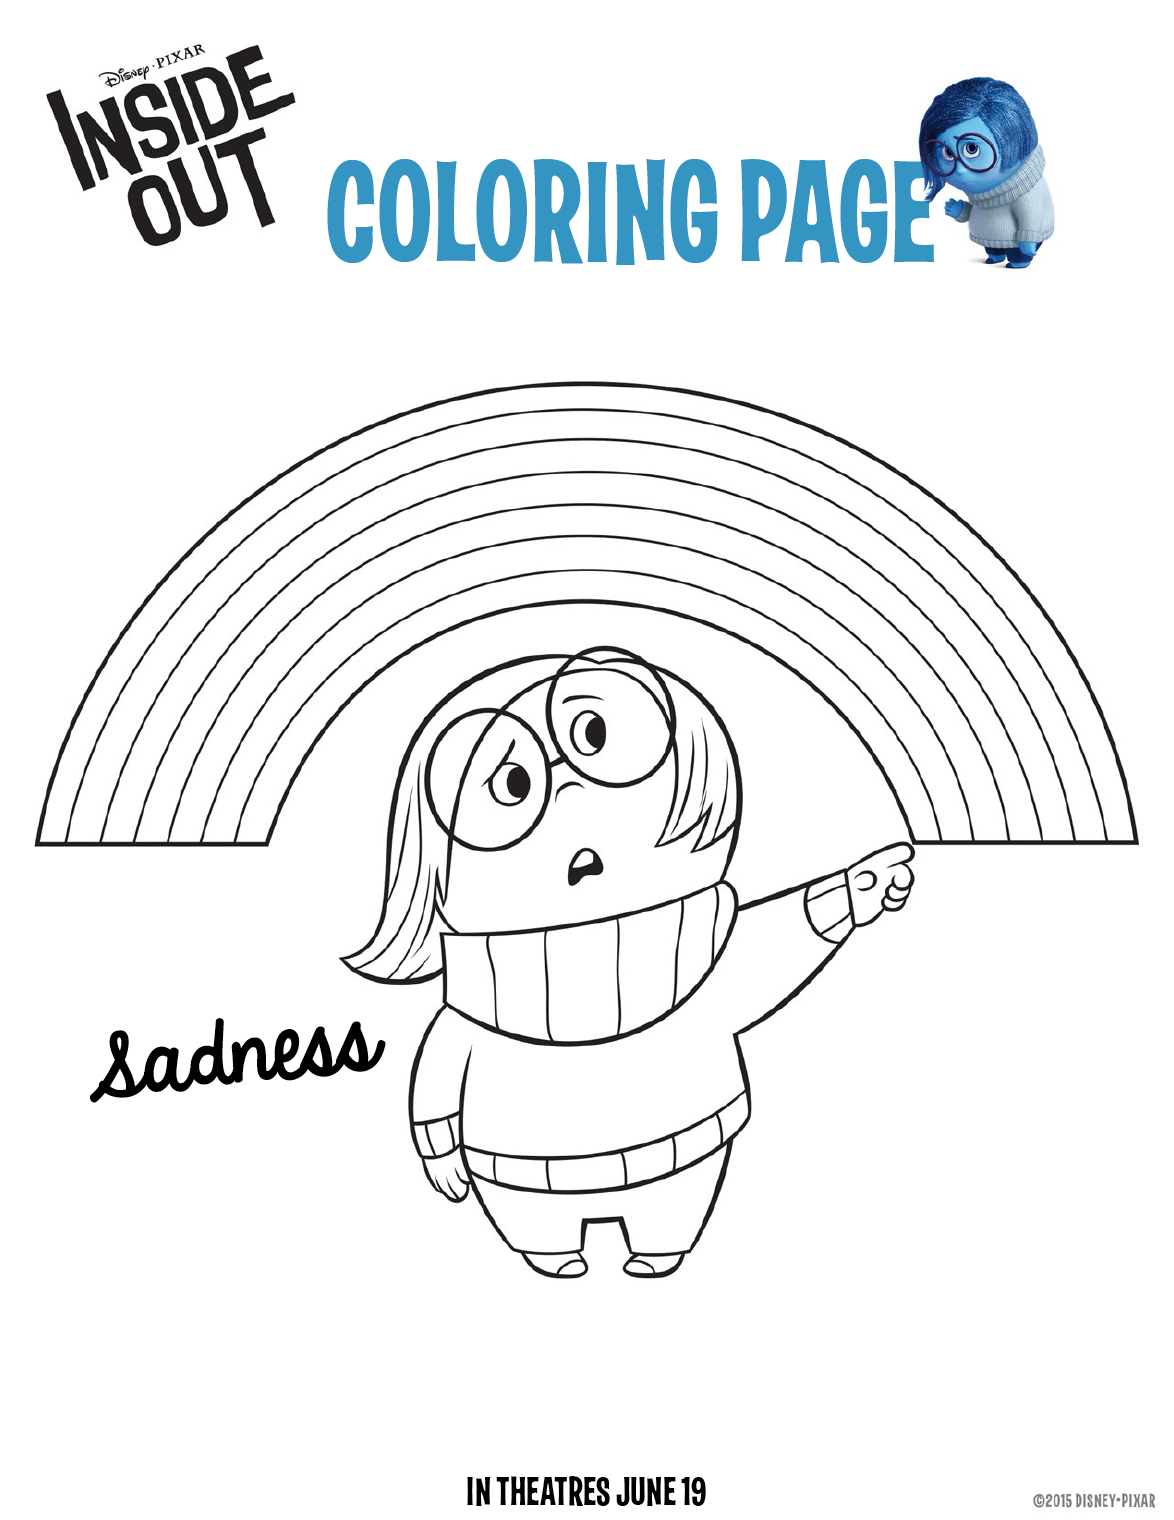 Inside Out Coloring Pages Free Downloads For Kids Insideoutevent Inside Out Coloring Pages Disney Inside Out Coloring Pages